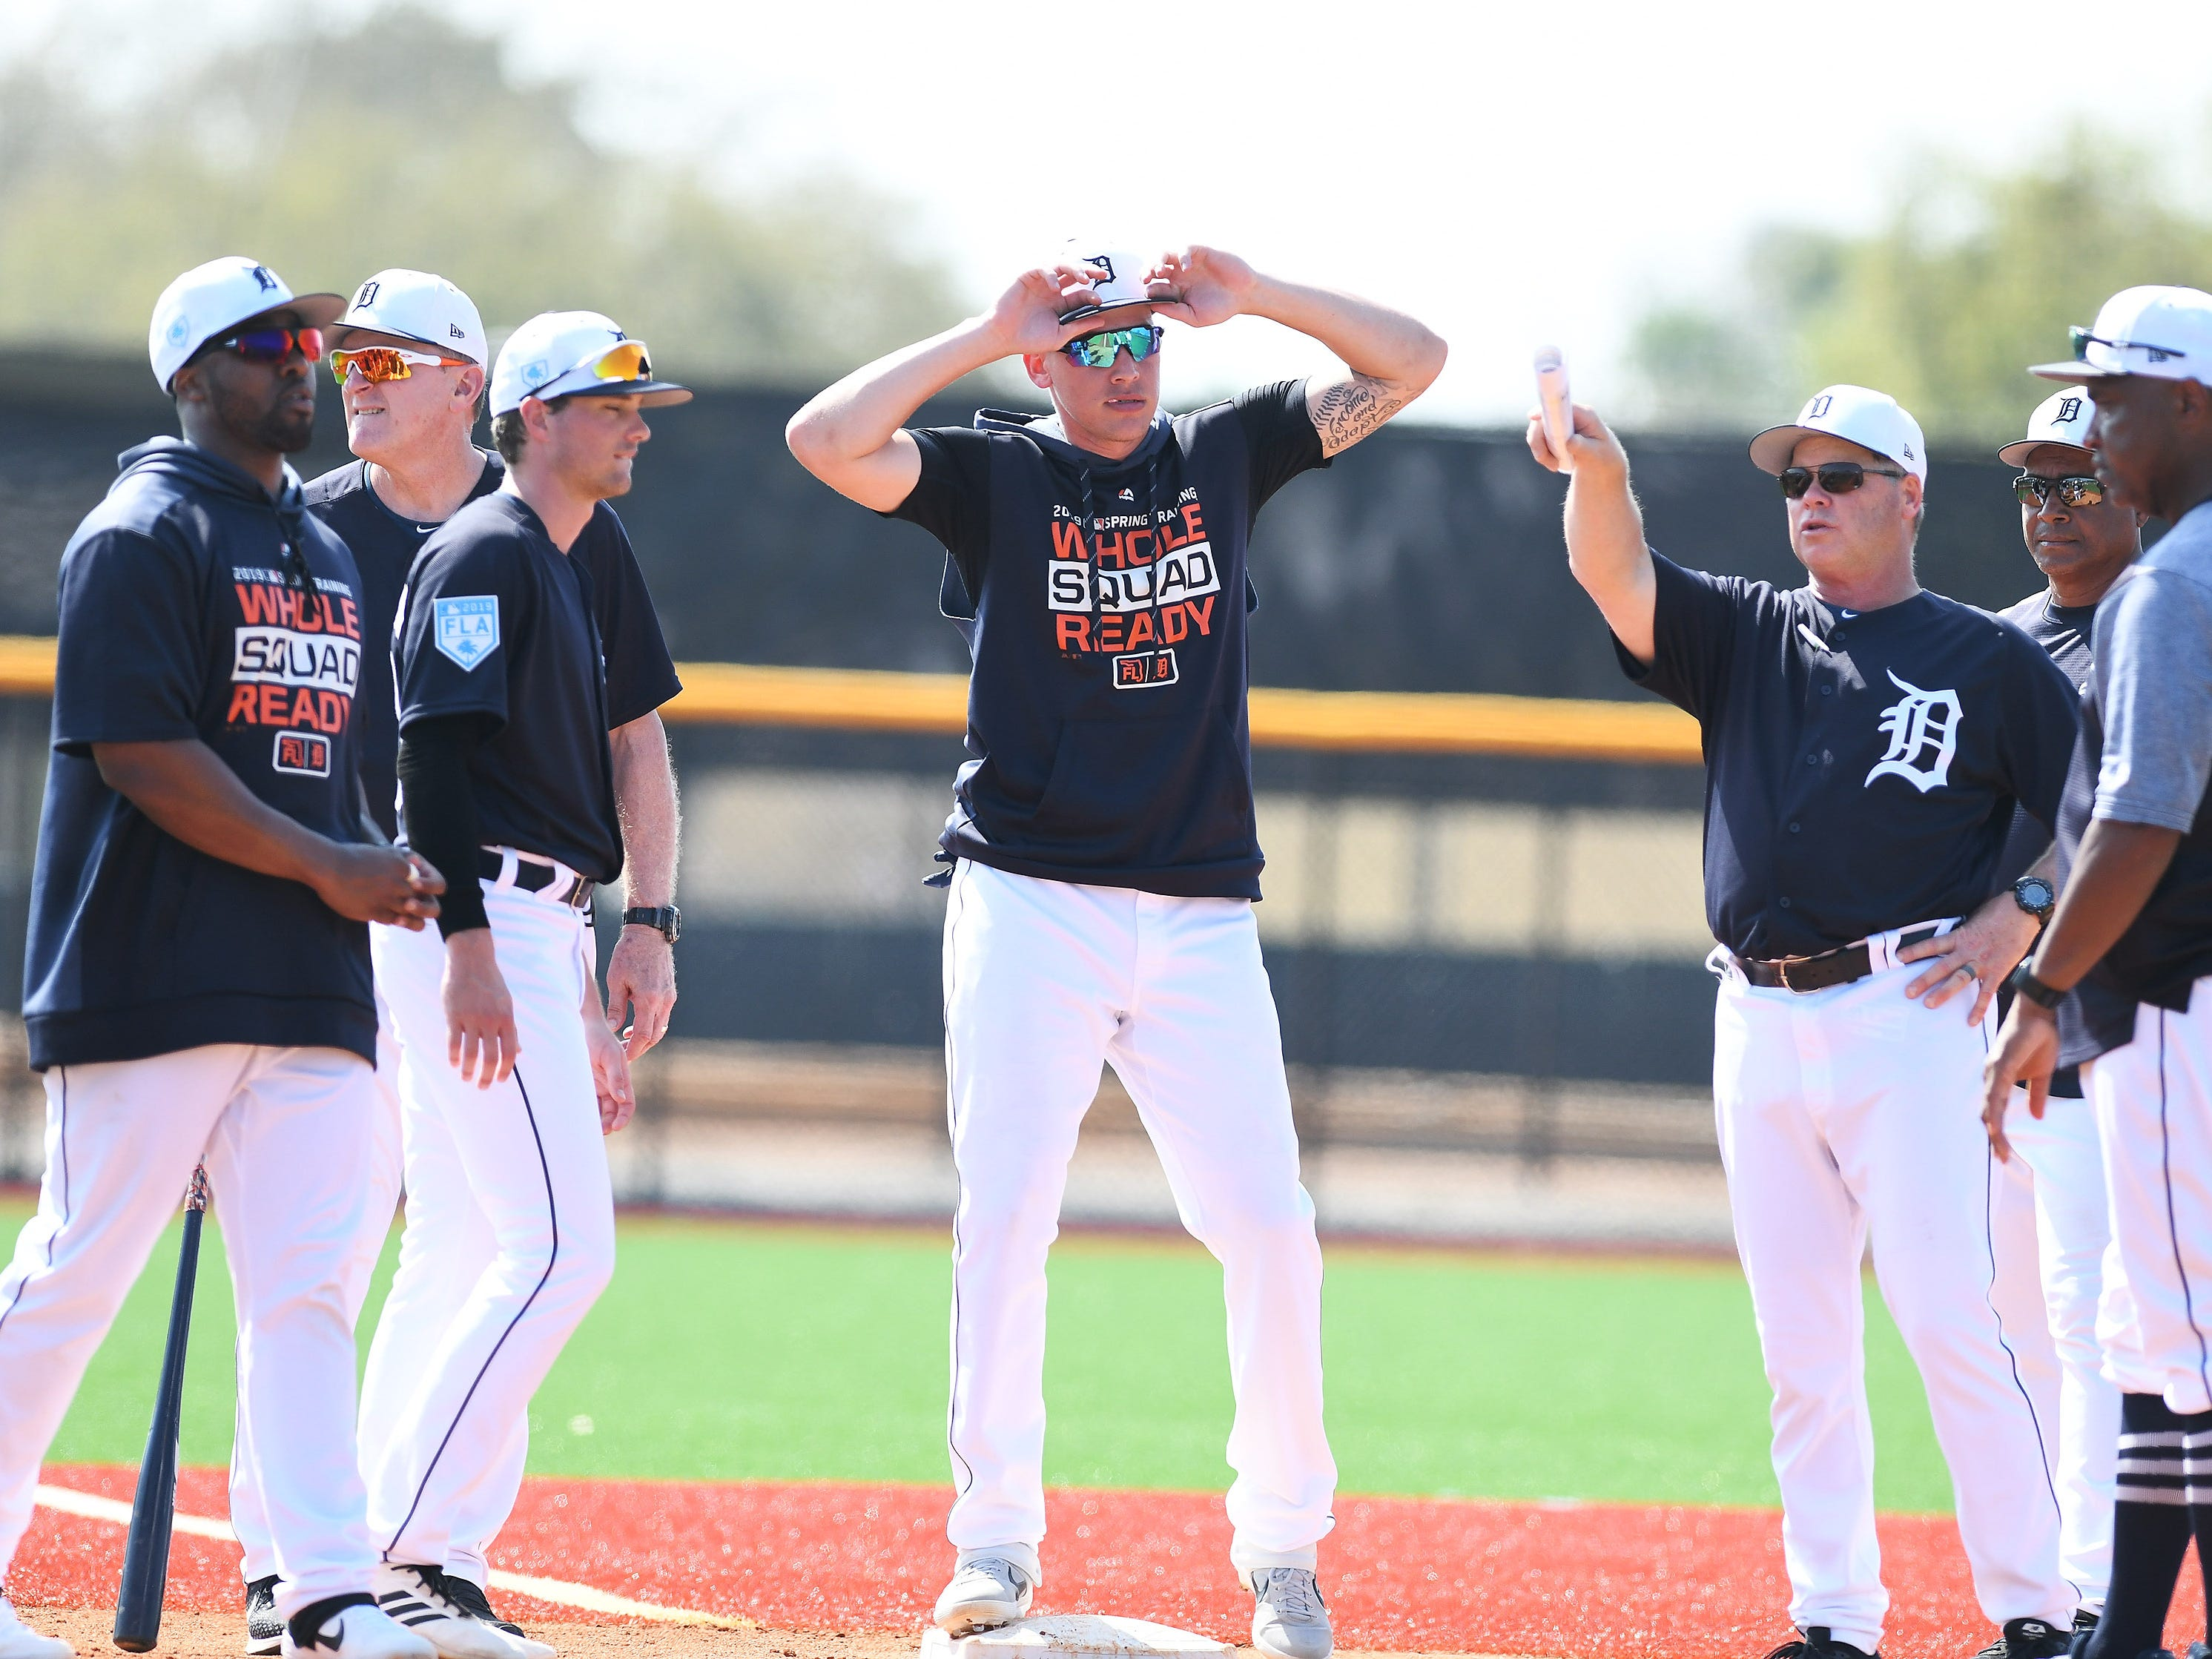 Tigers' JaCoby Jones, center, listens to instructions from quality control coach Joe Vavra, right, during base running drills.